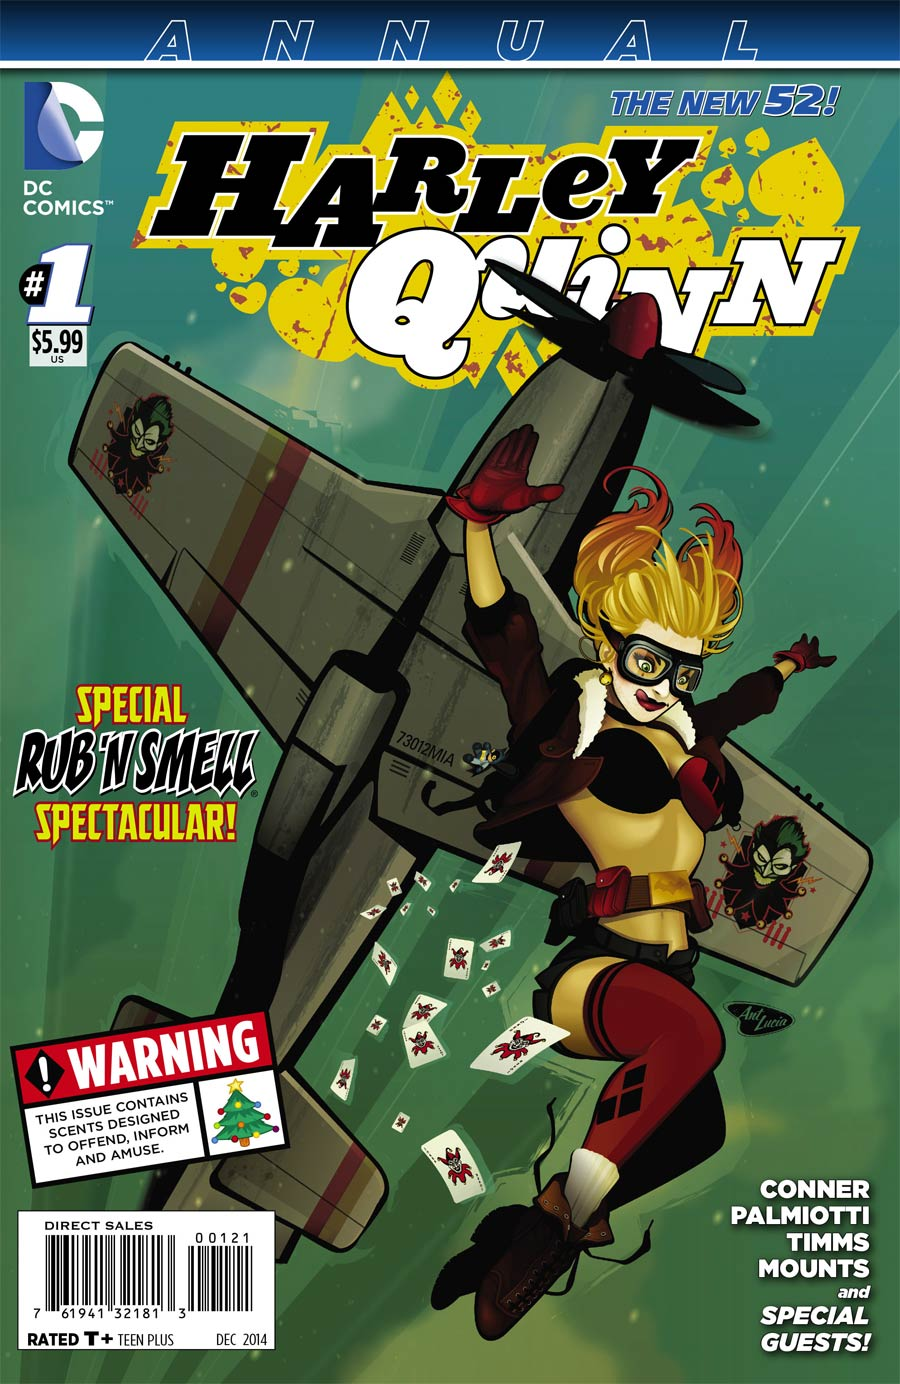 Harley Quinn Vol 2 Annual #1 Cover B Variant DC Bombshells Cover International Edition With Polybag